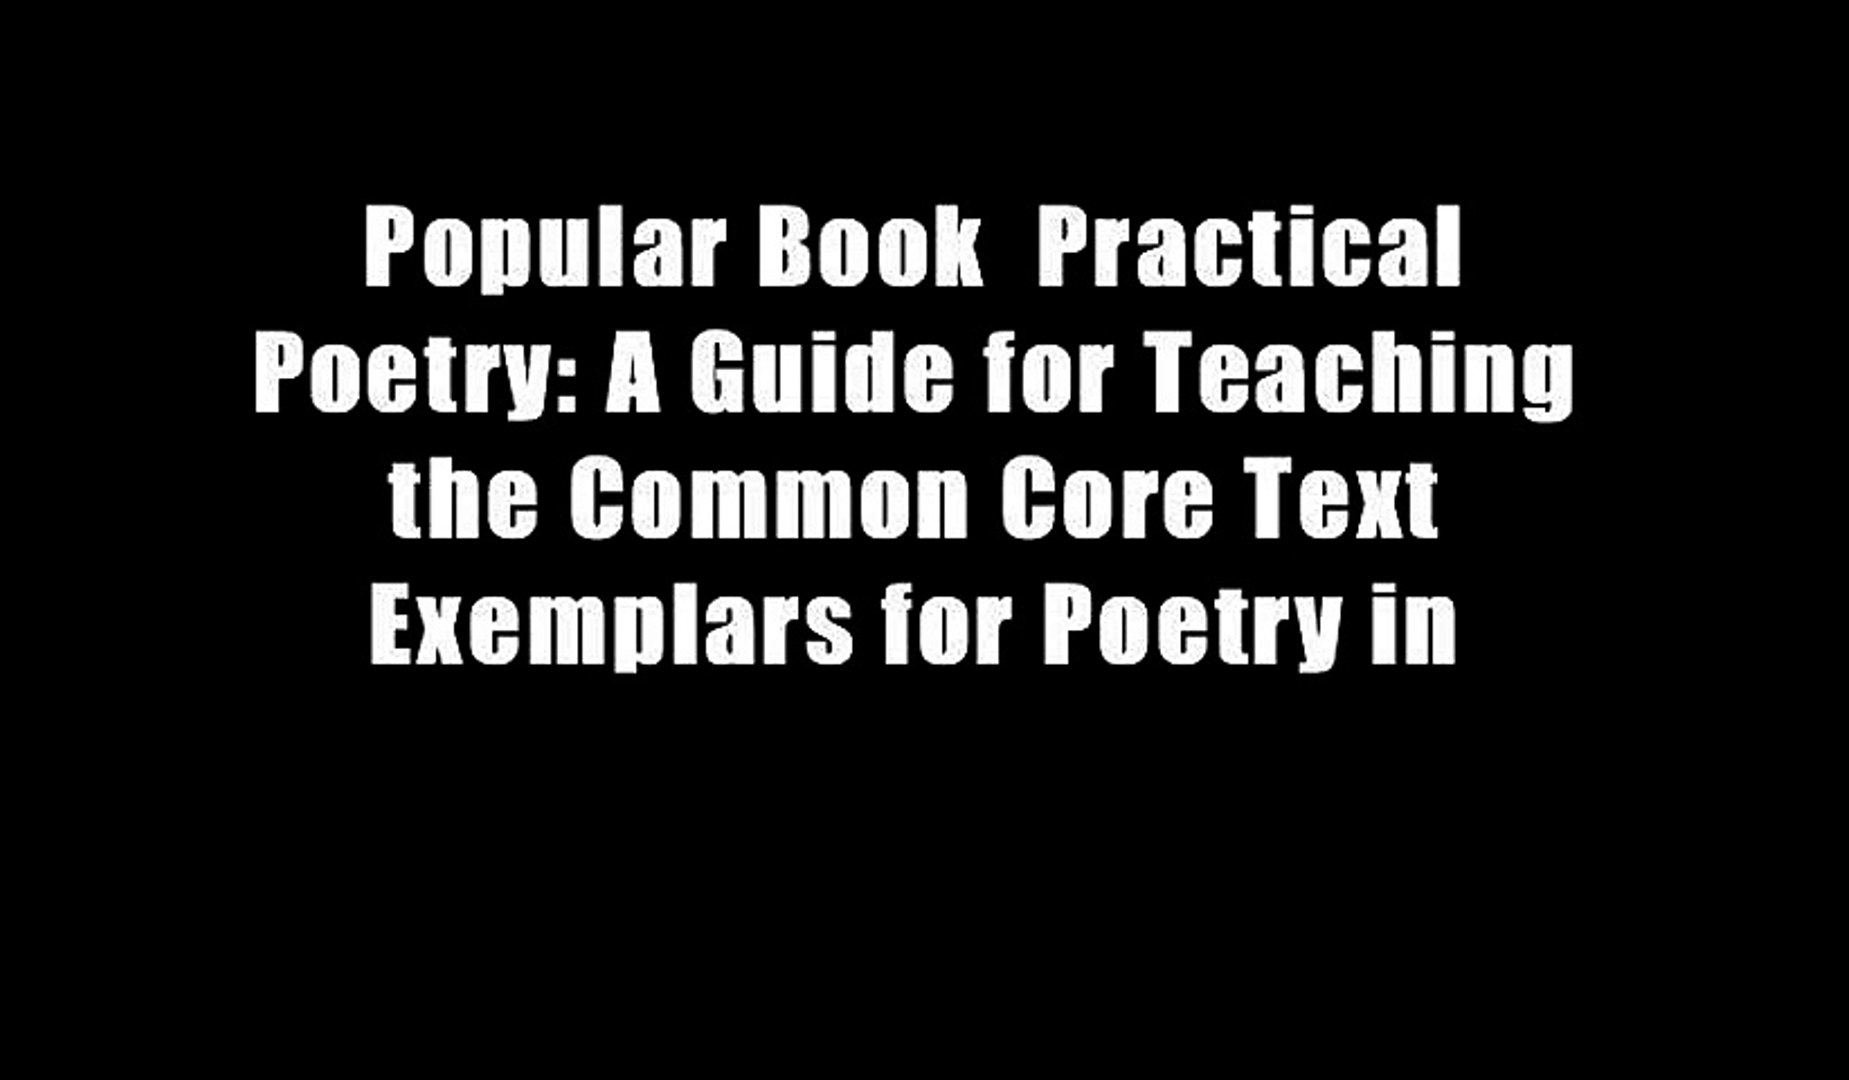 Popular Book  Practical Poetry: A Guide for Teaching the Common Core Text Exemplars for Poetry in